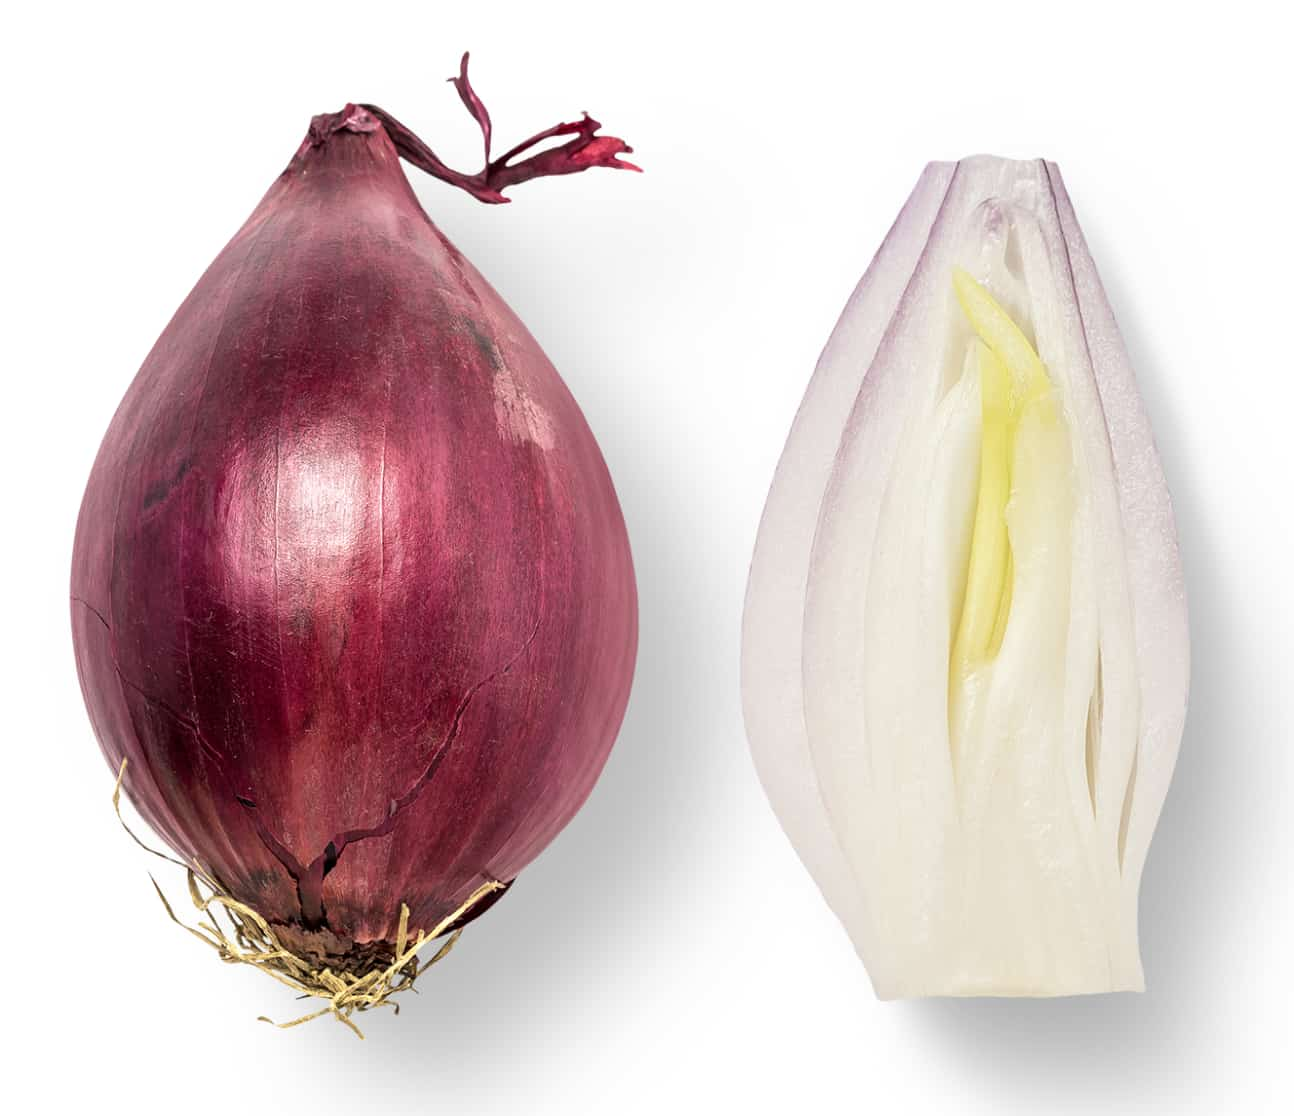 image of shallot